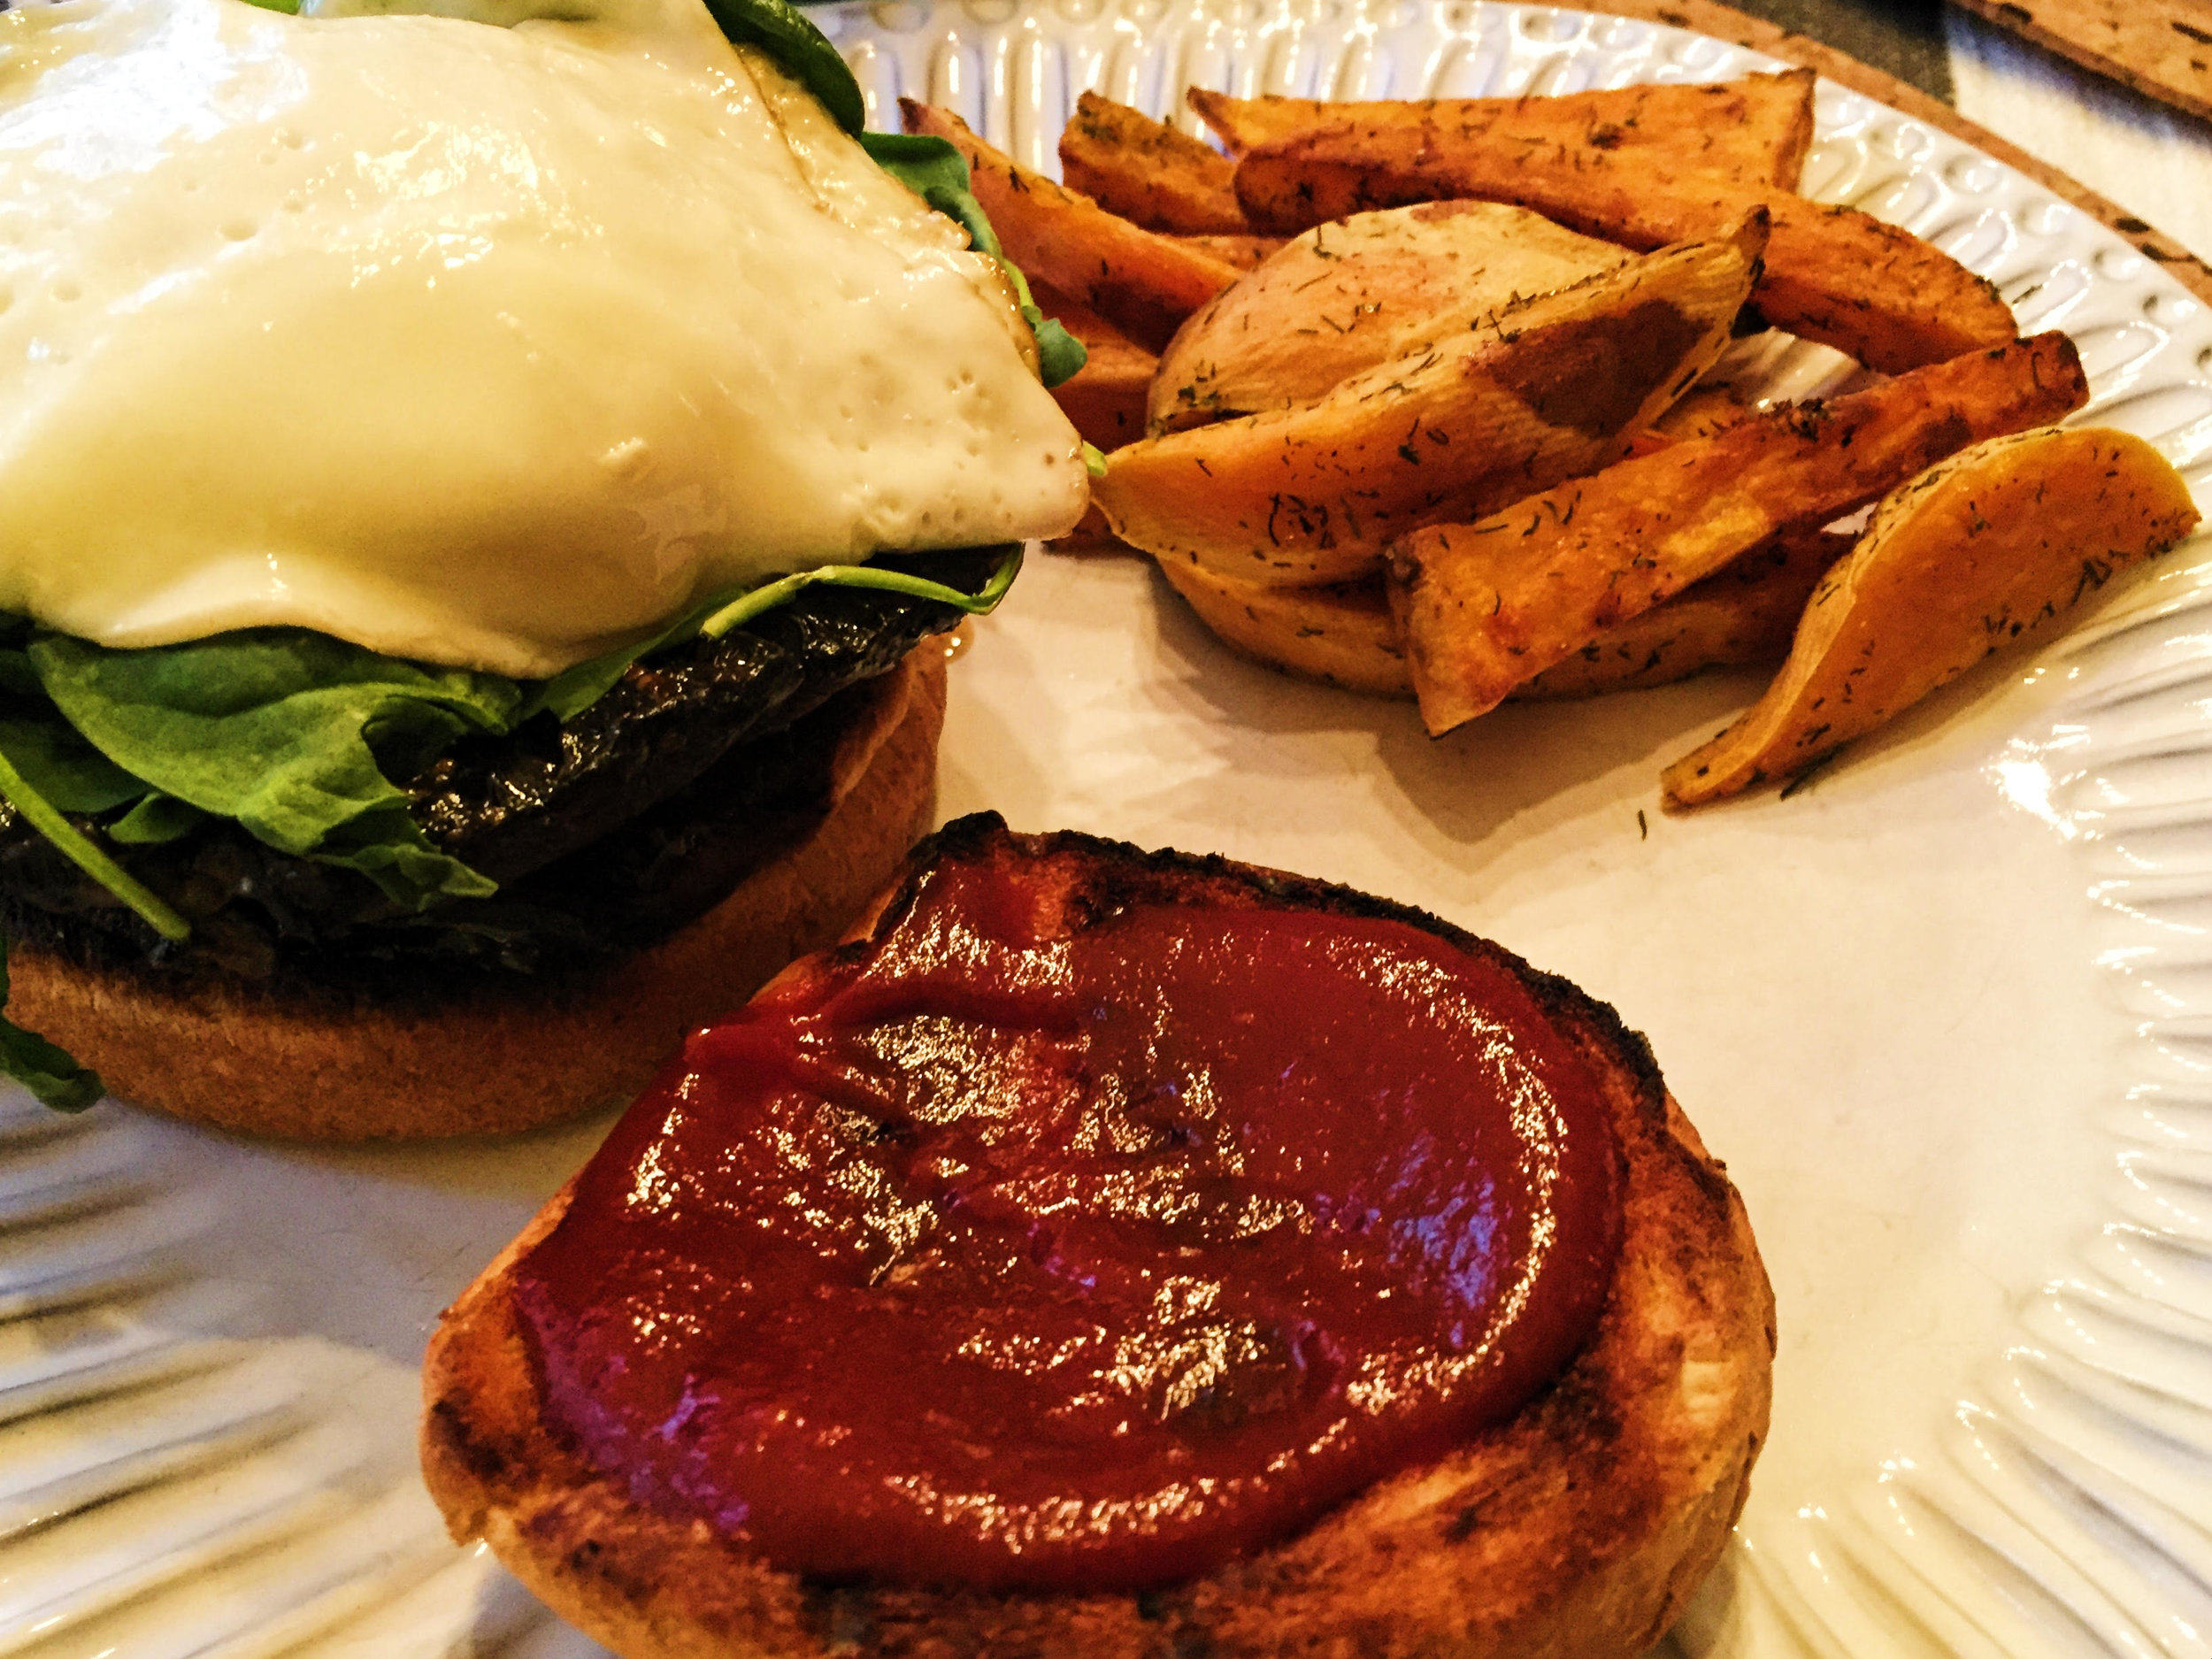 Plated Burger